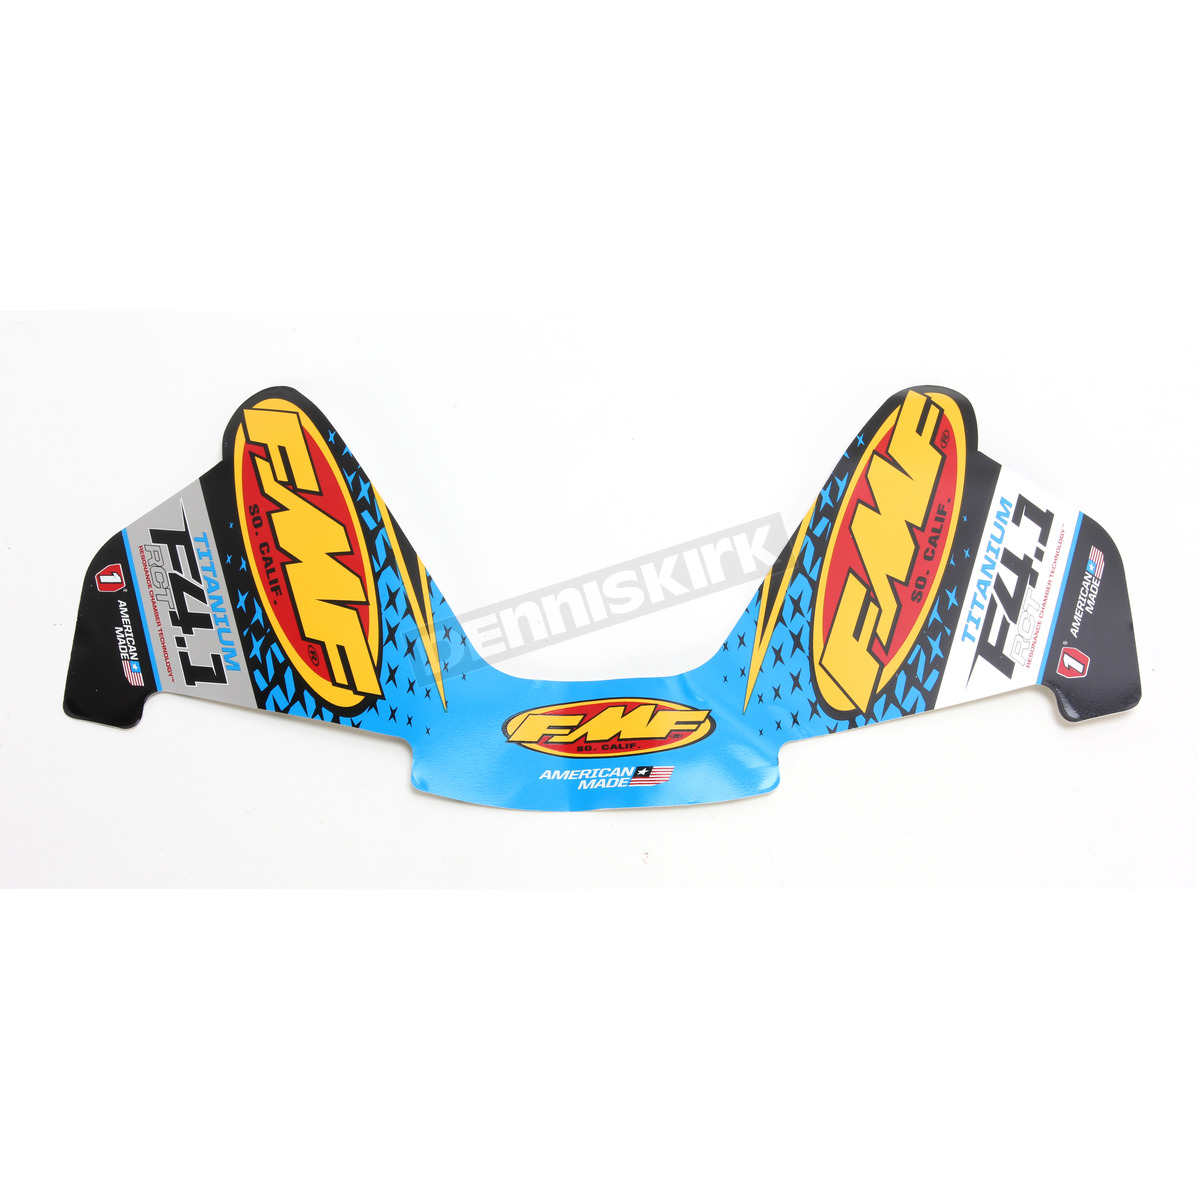 FMF Factory 4.1 Exhaust Replacement Sticker Decals Aluminum RCT Wrap 014820